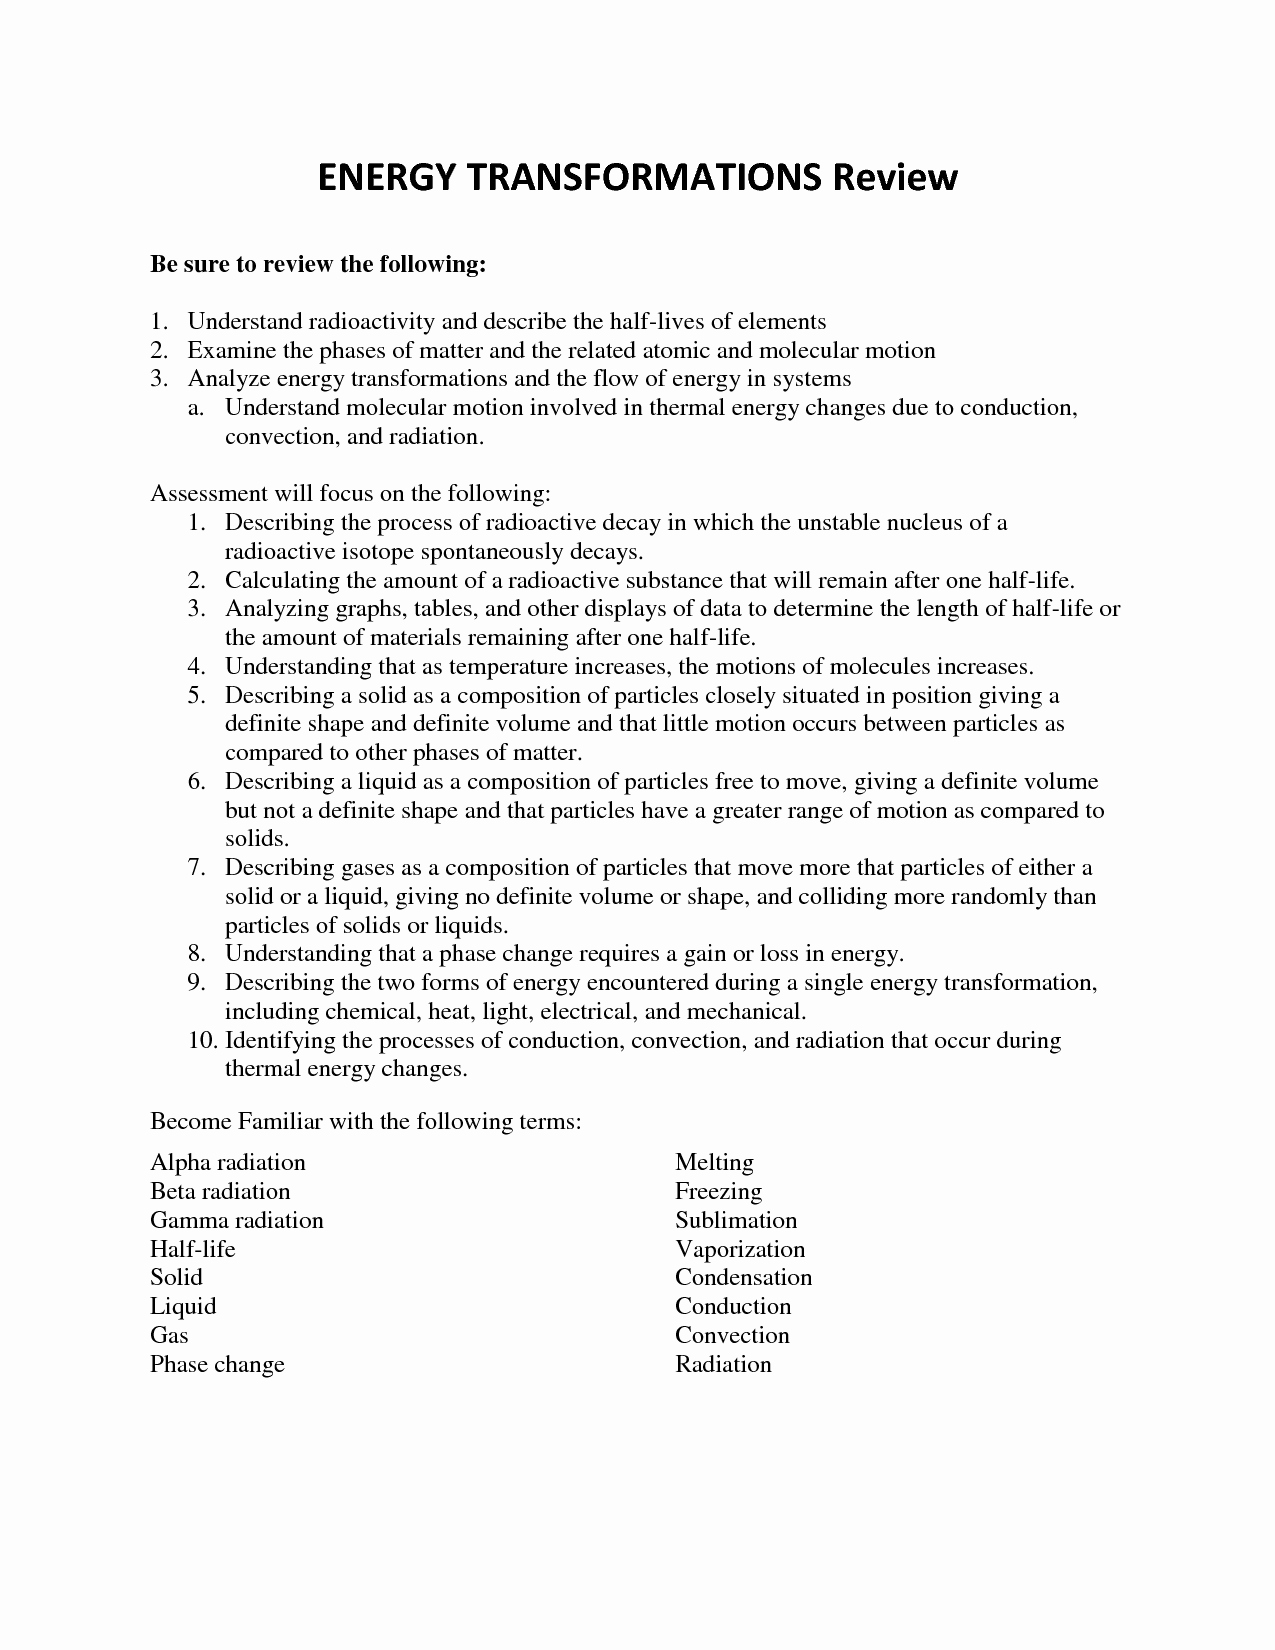 50 Energy Transformation Worksheet Middle School